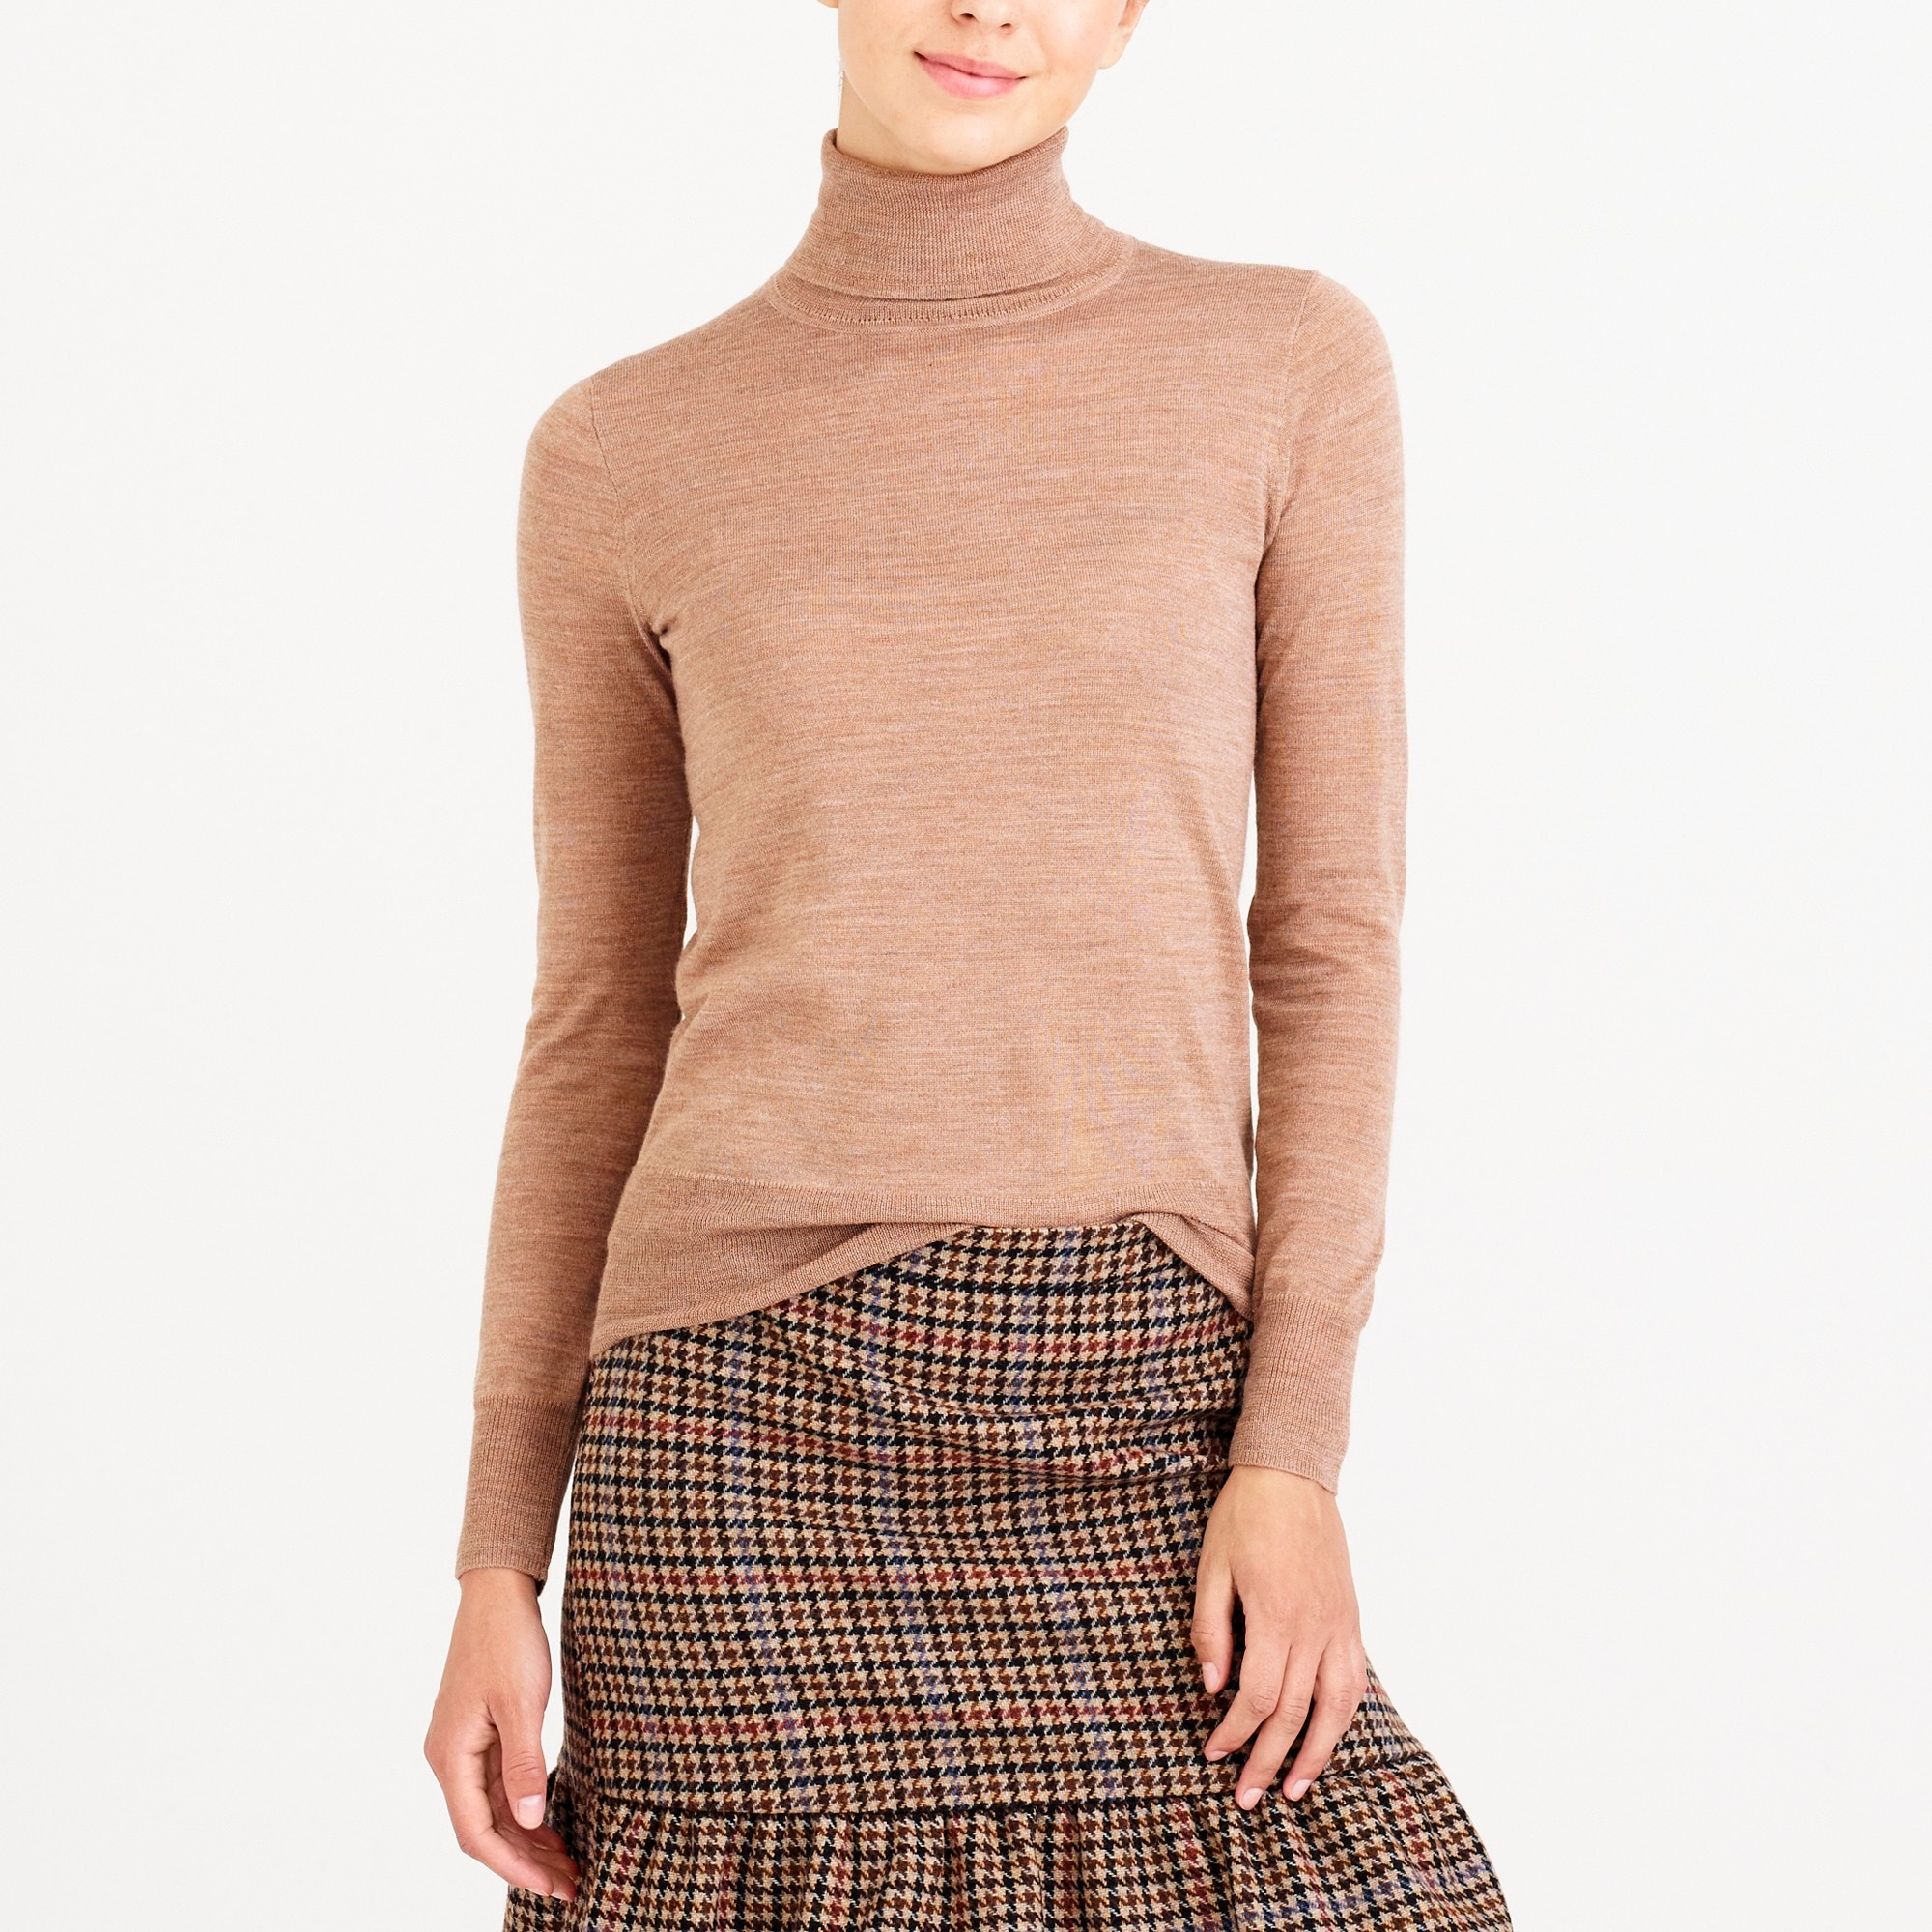 merino wool turtleneck sweater : factorywomen turtlenecks